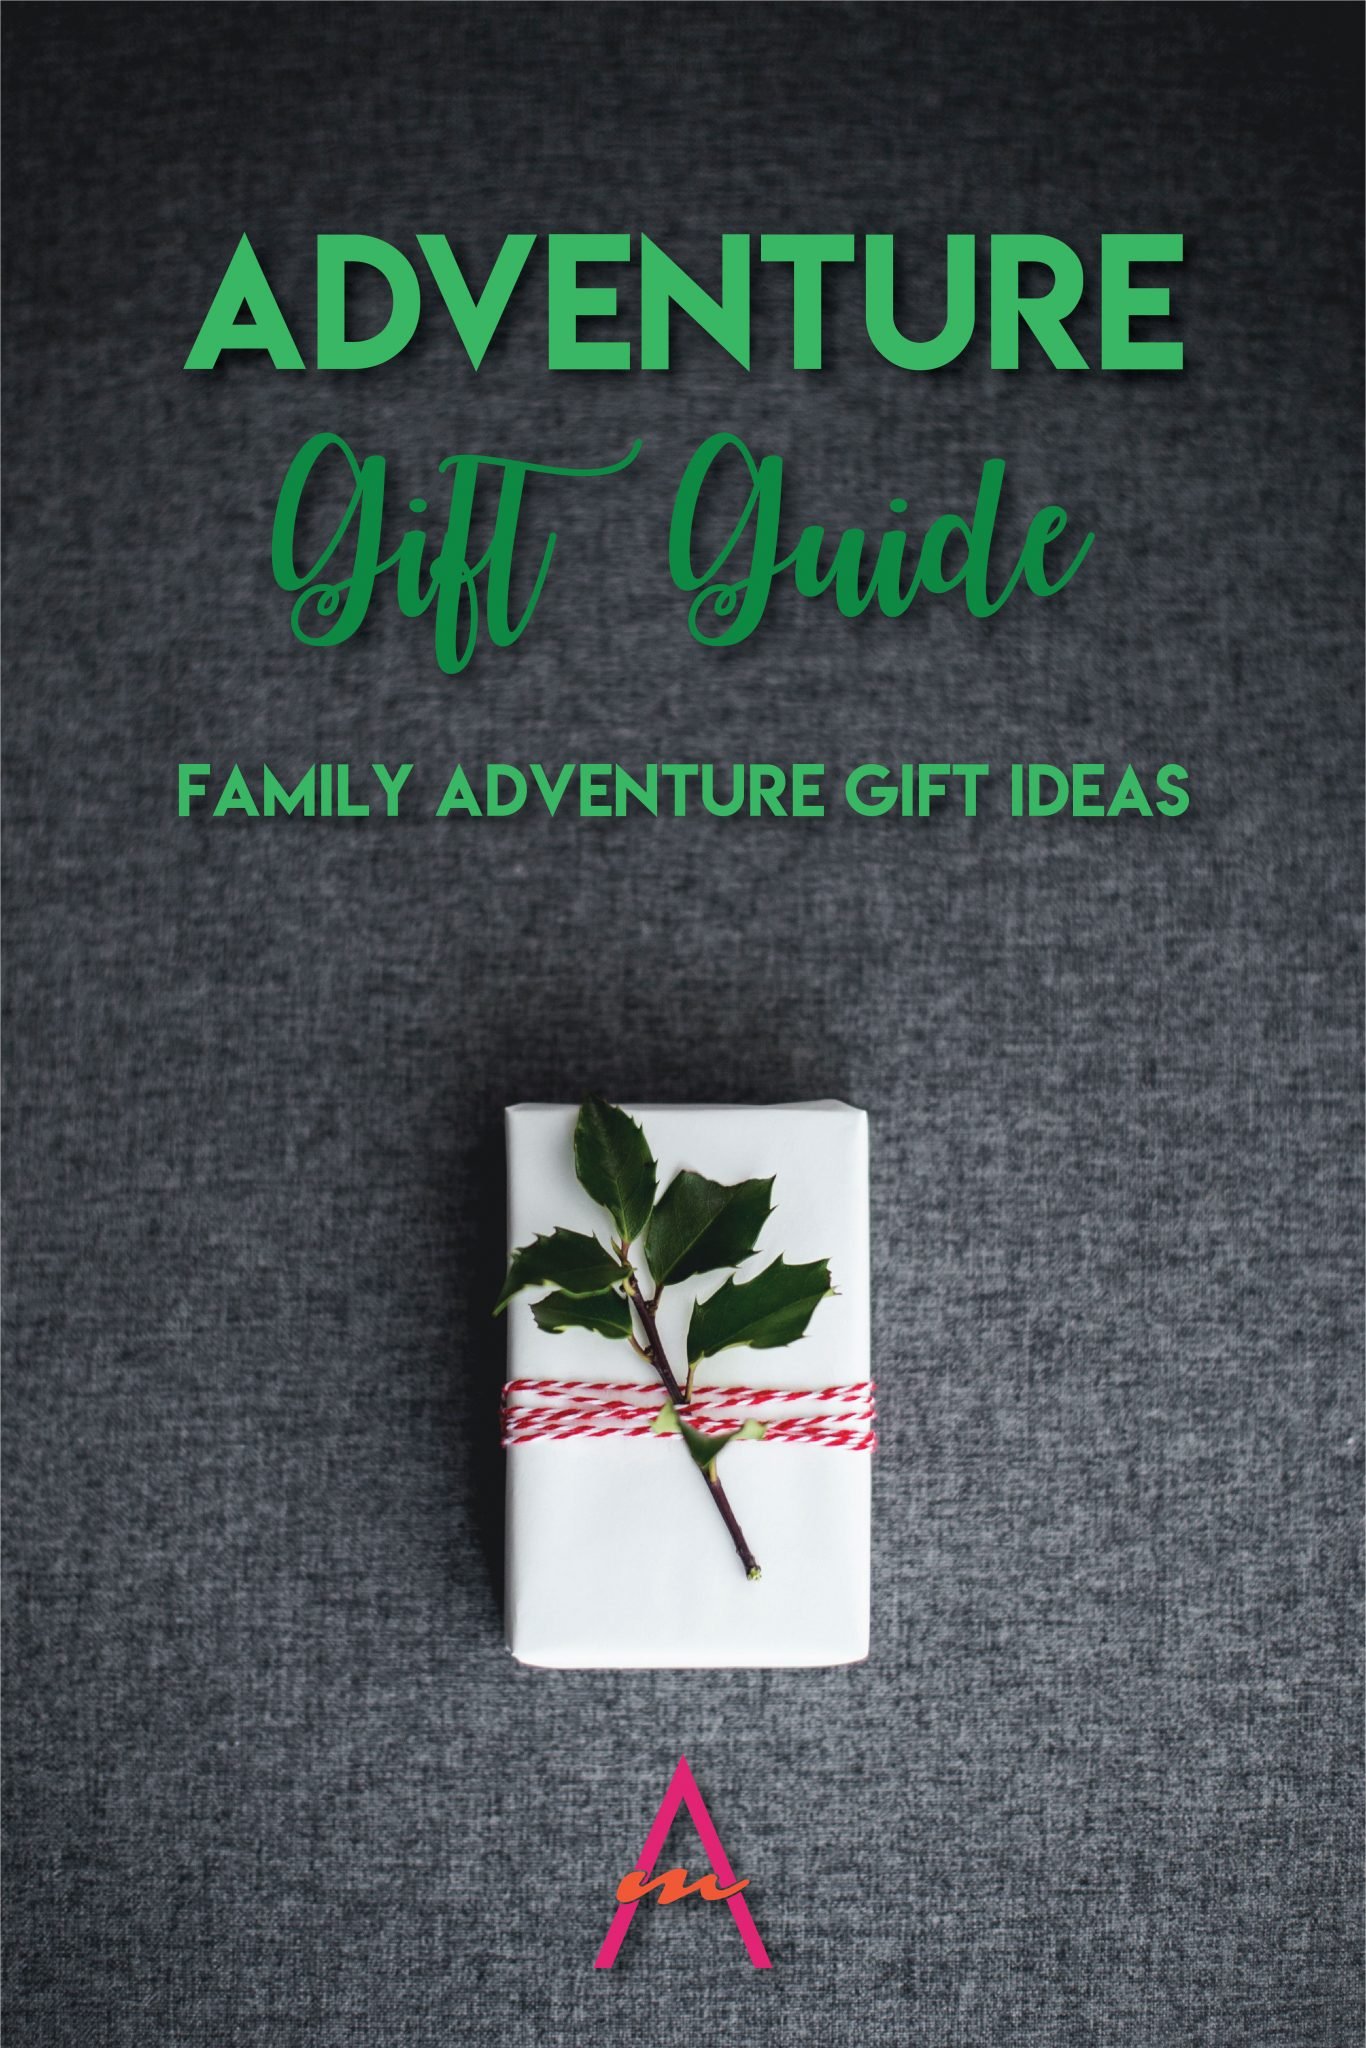 Adventure Gift Guide: Family Adventure Gift Ideas